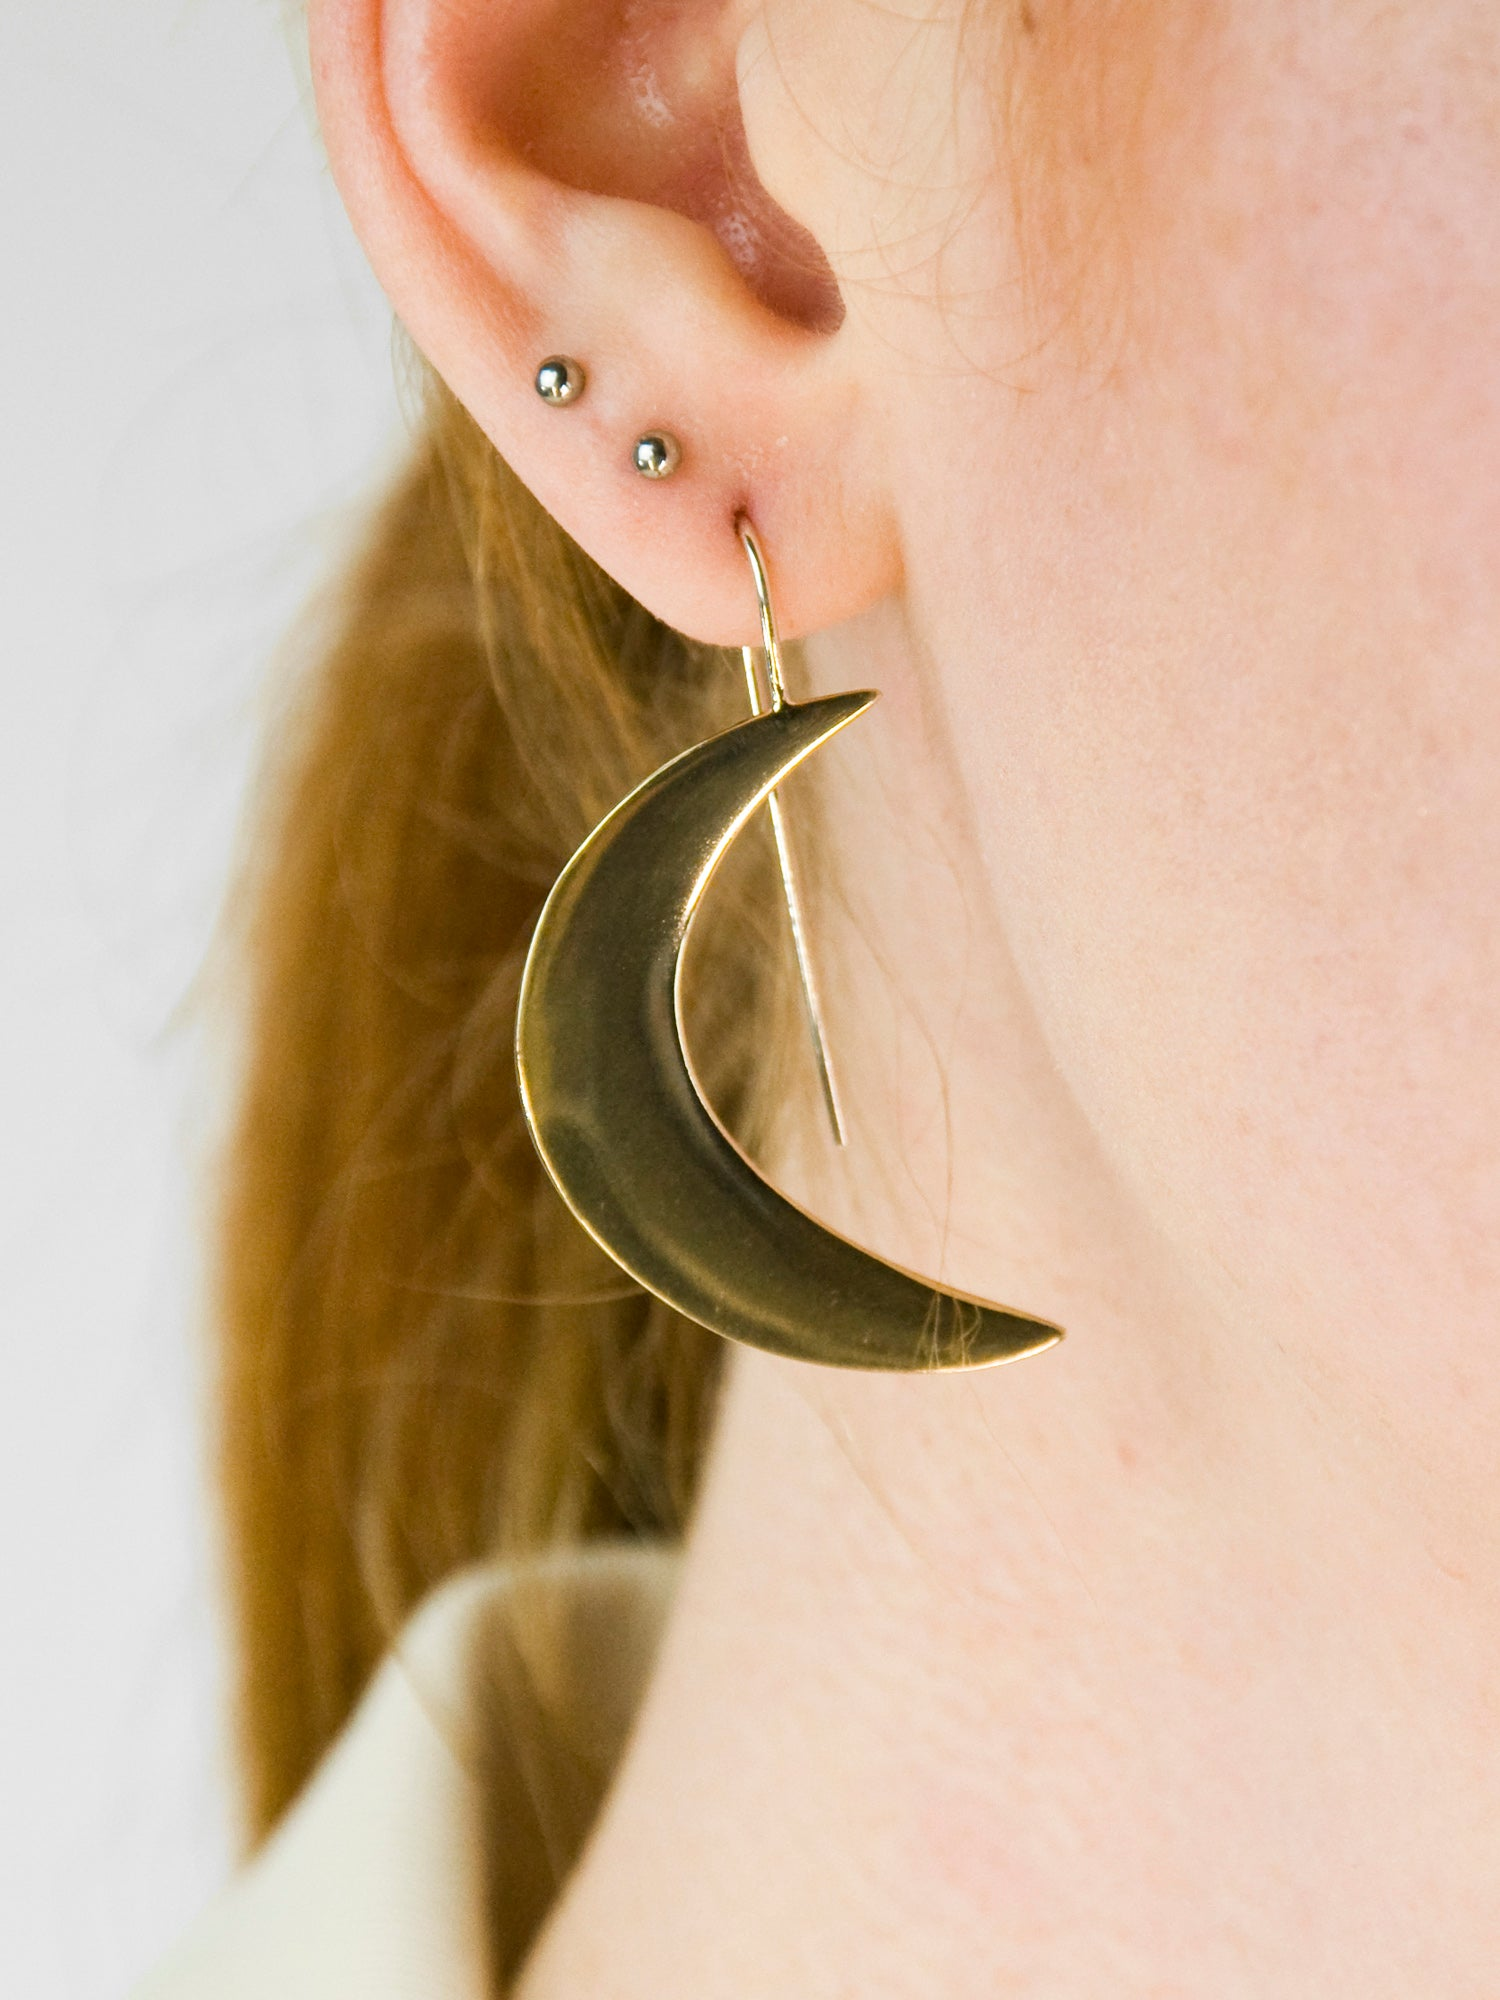 Inspiral Earrings / Brass & Silver